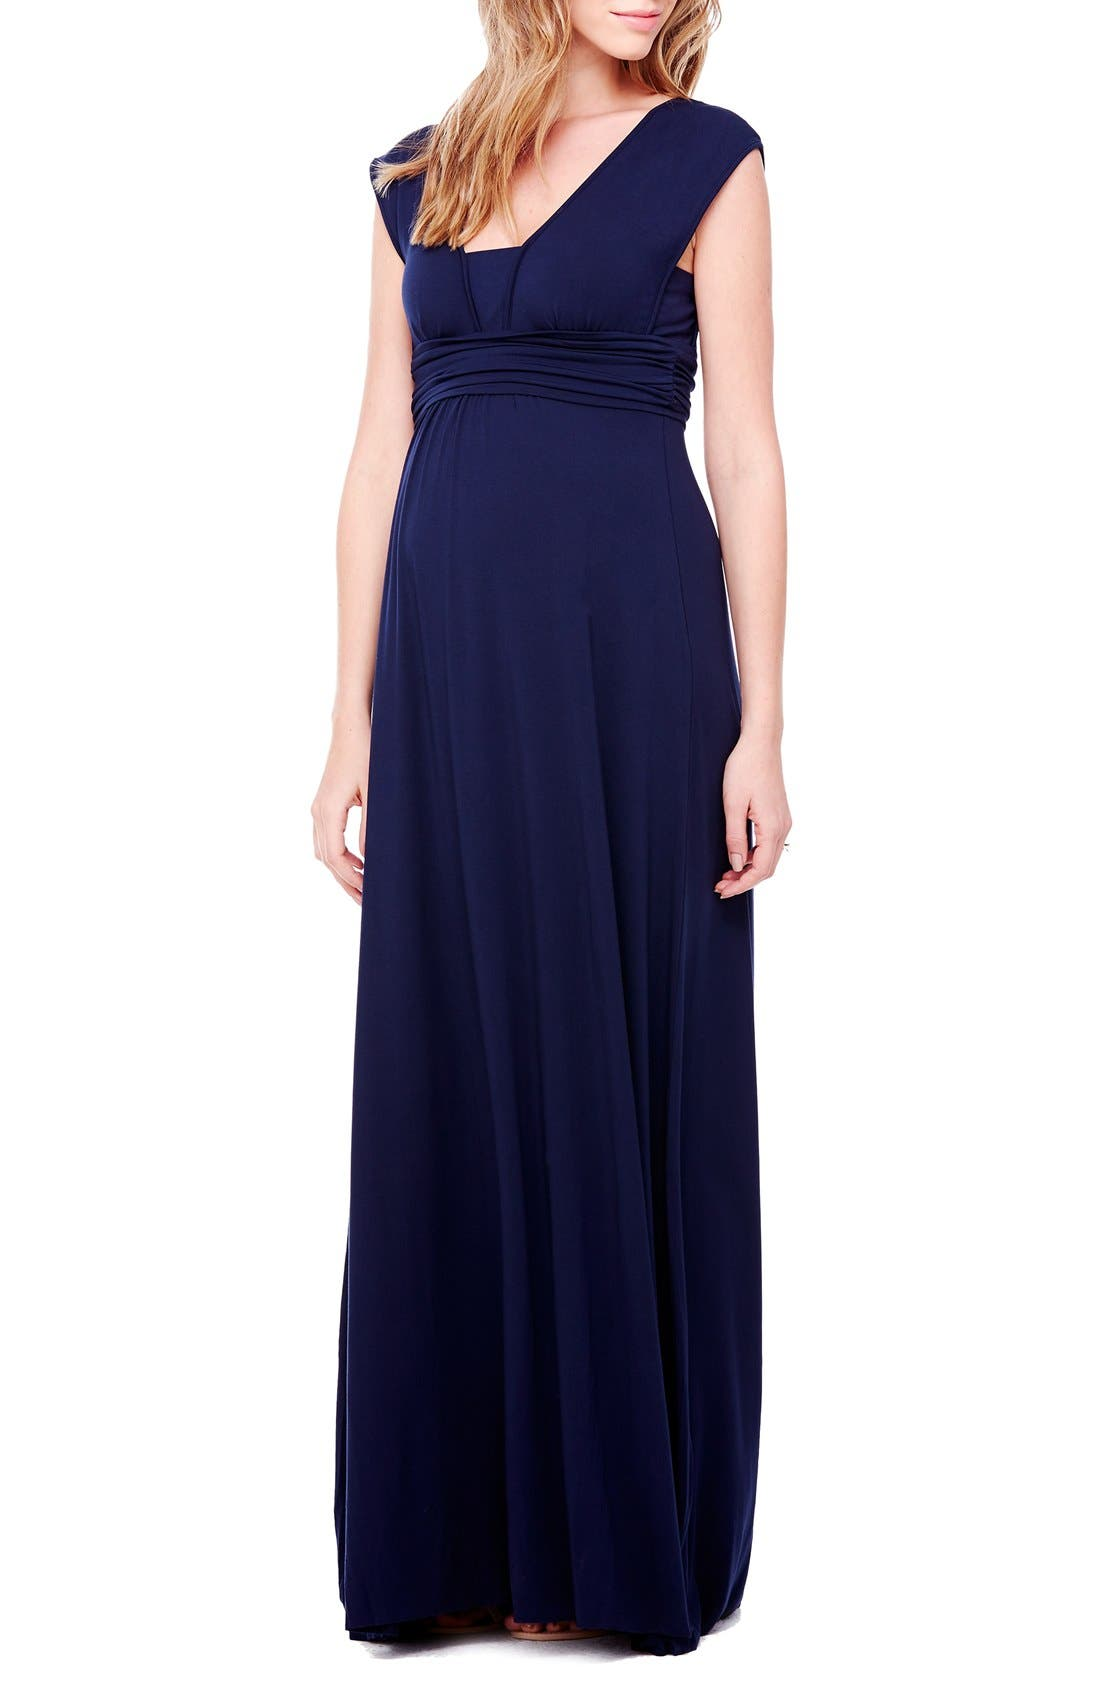 Alternate Image 1 Selected - Ingrid & Isabel® Empire Waist Maternity Maxi Dress